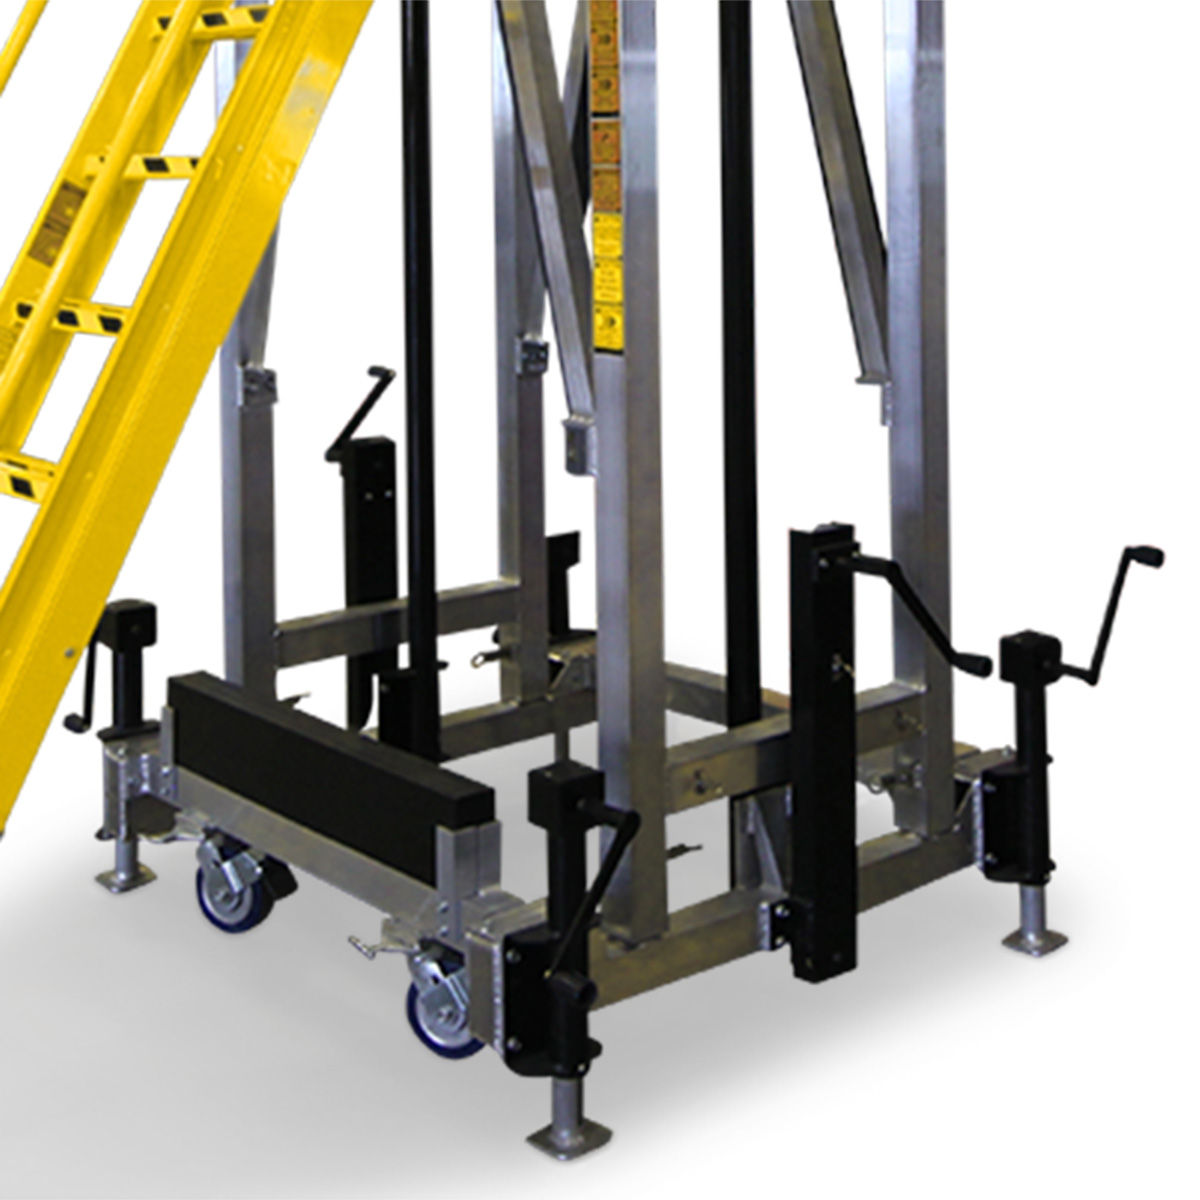 OSHA compliant work stand with added stability provided by optional counter-weights and floor jacks for 100% fall protection.